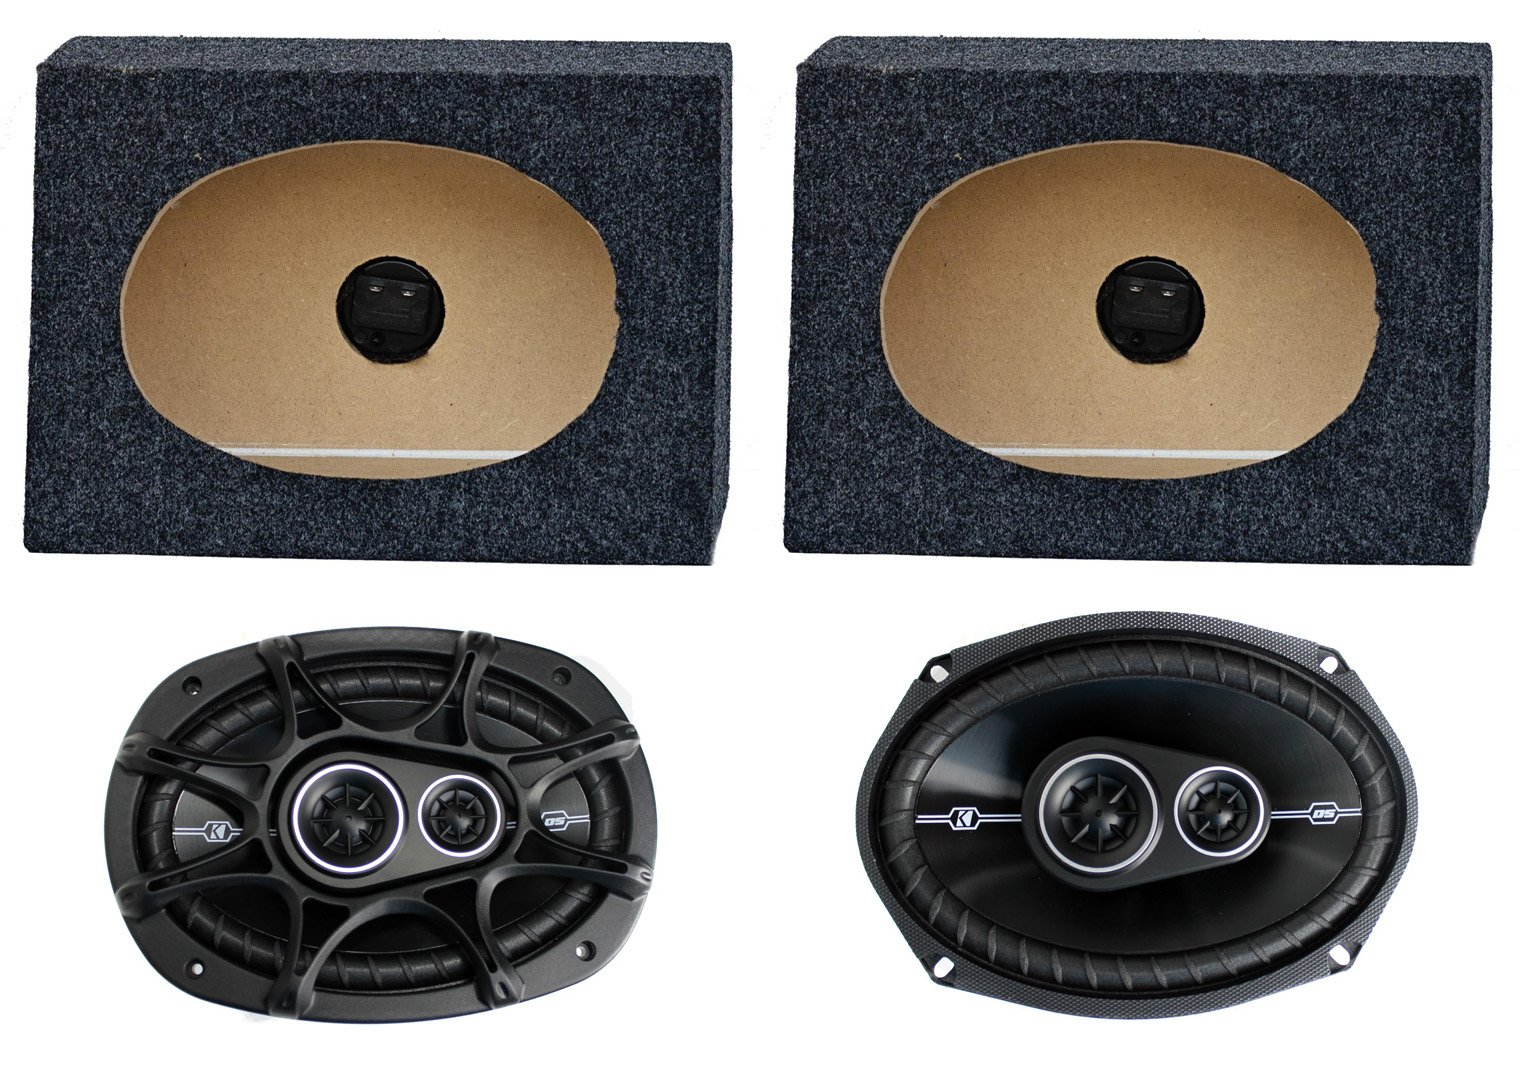 2) Kicker 41DSC6934 6x9'' 360W Car Speakers + 2) QTW6X9 Angled 6x9'' Speaker Box